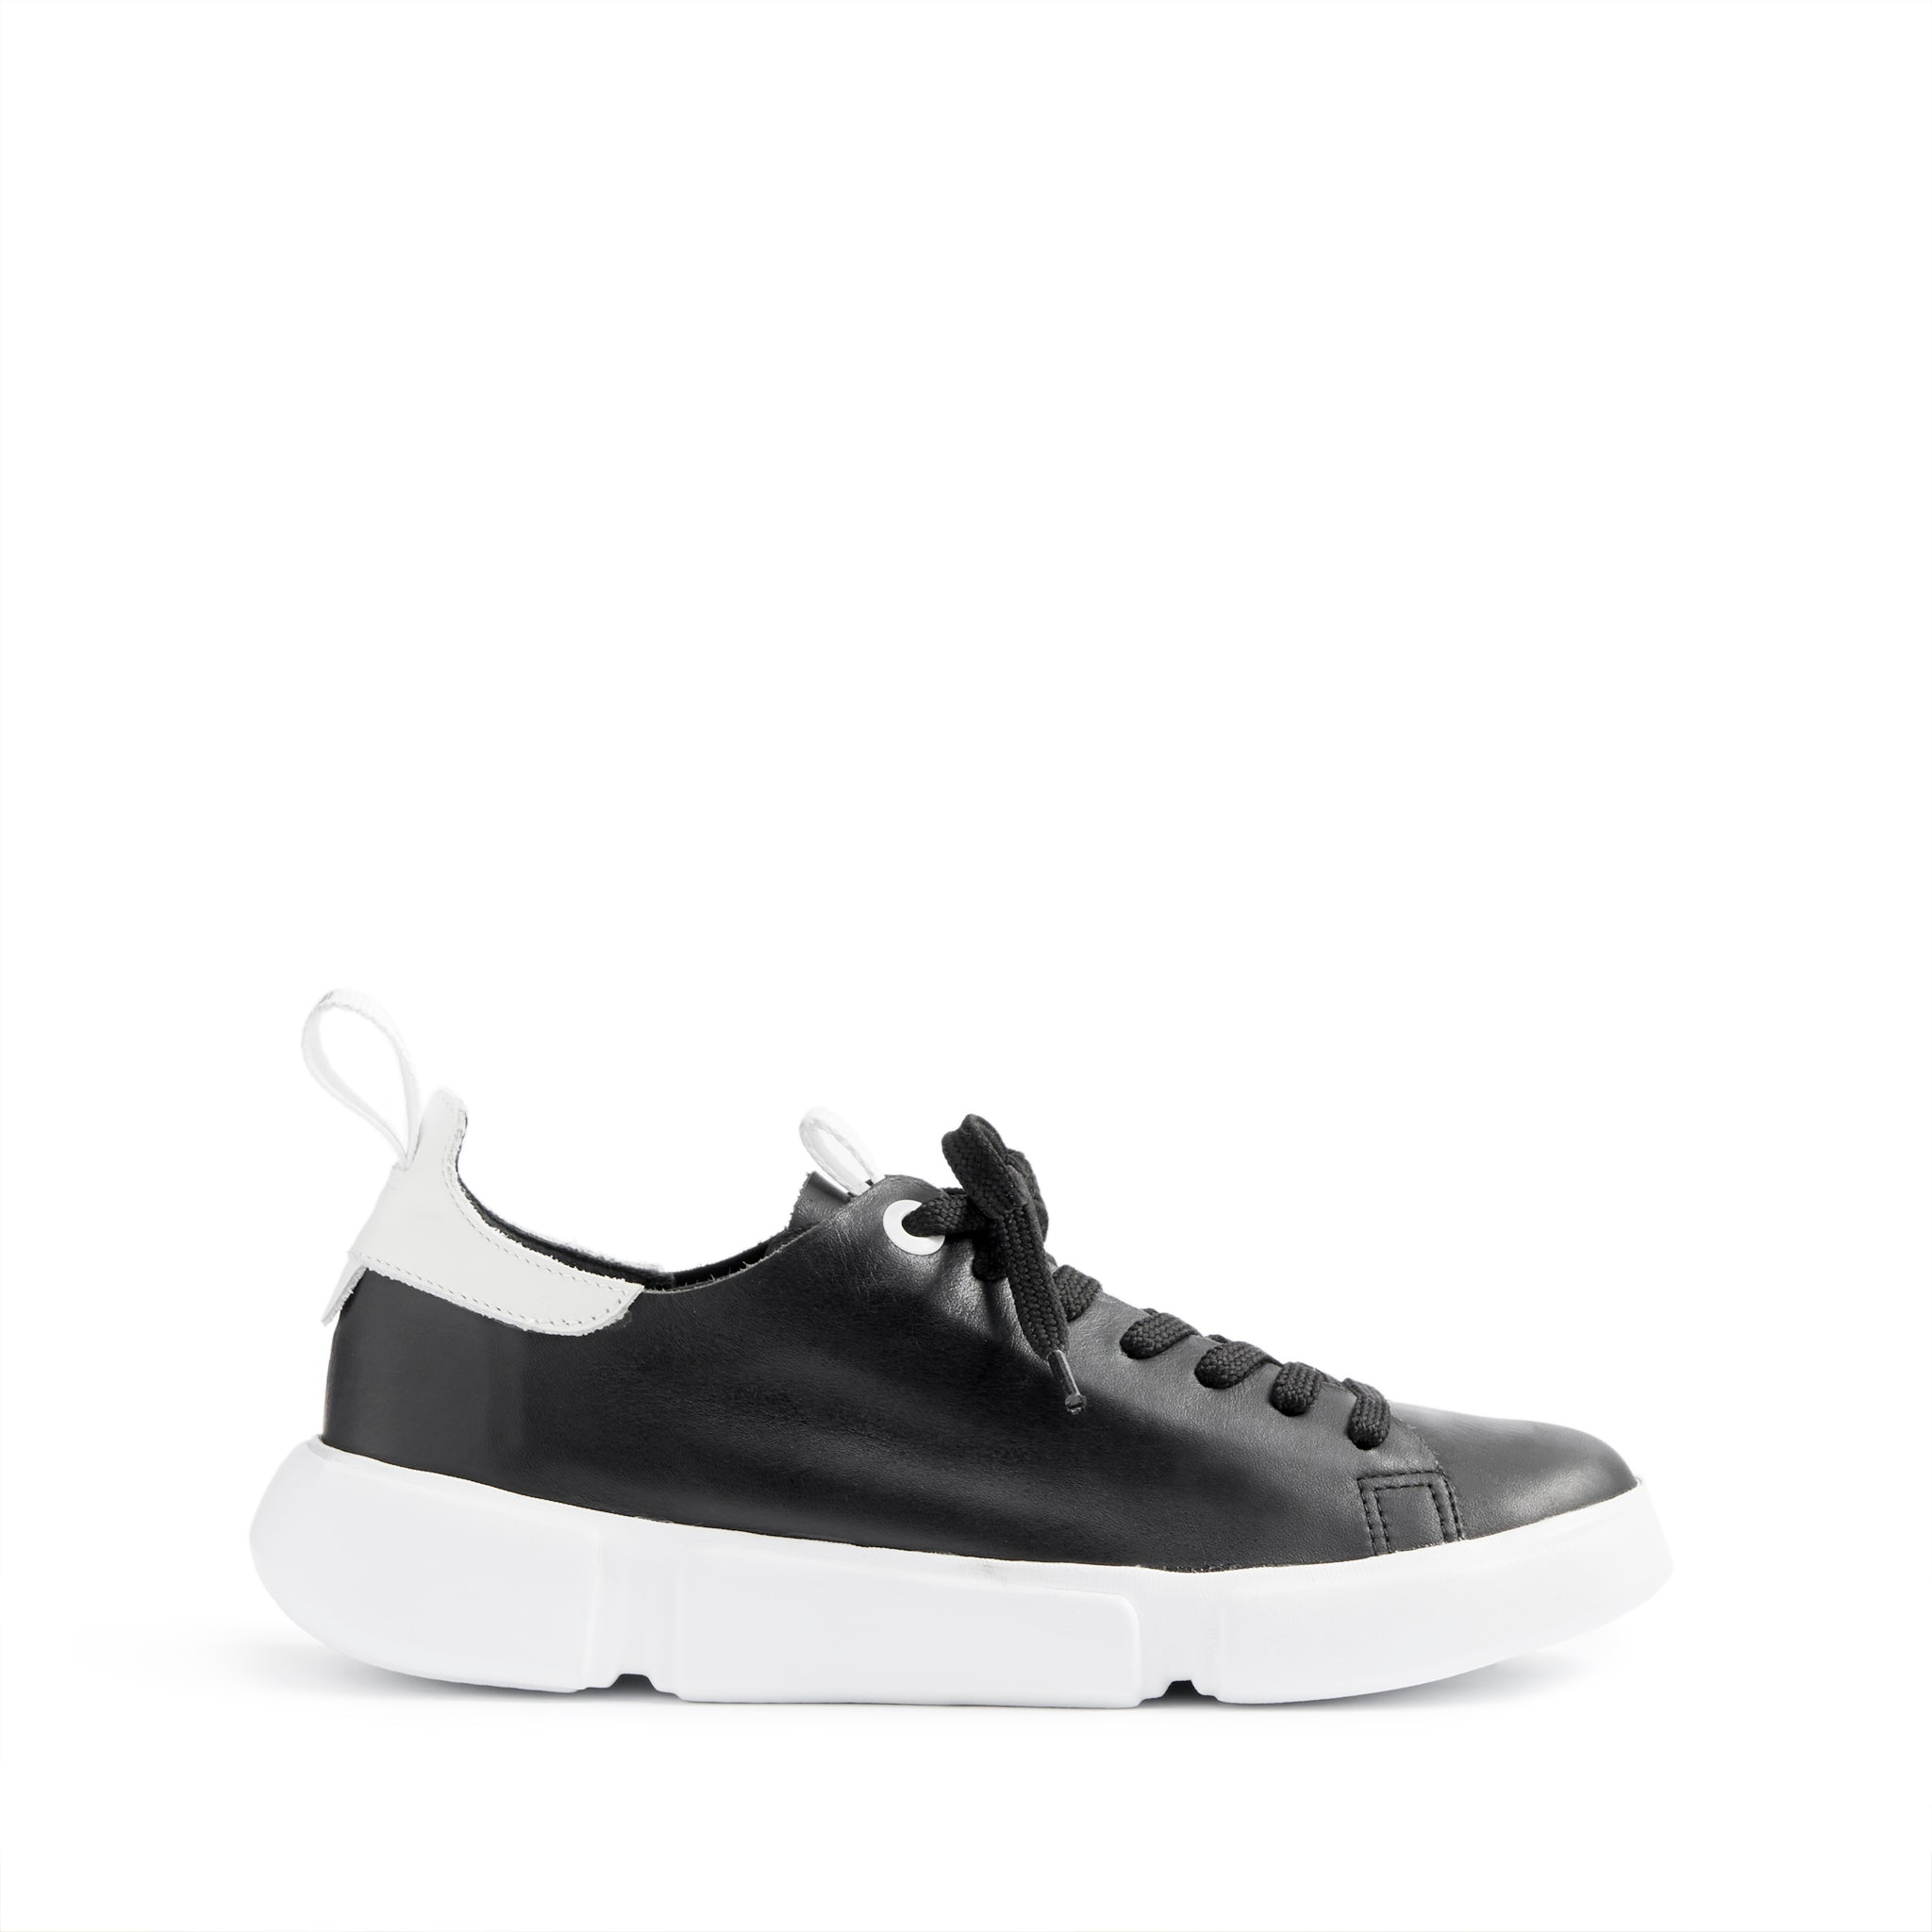 Cailey Sneakers Black Leather